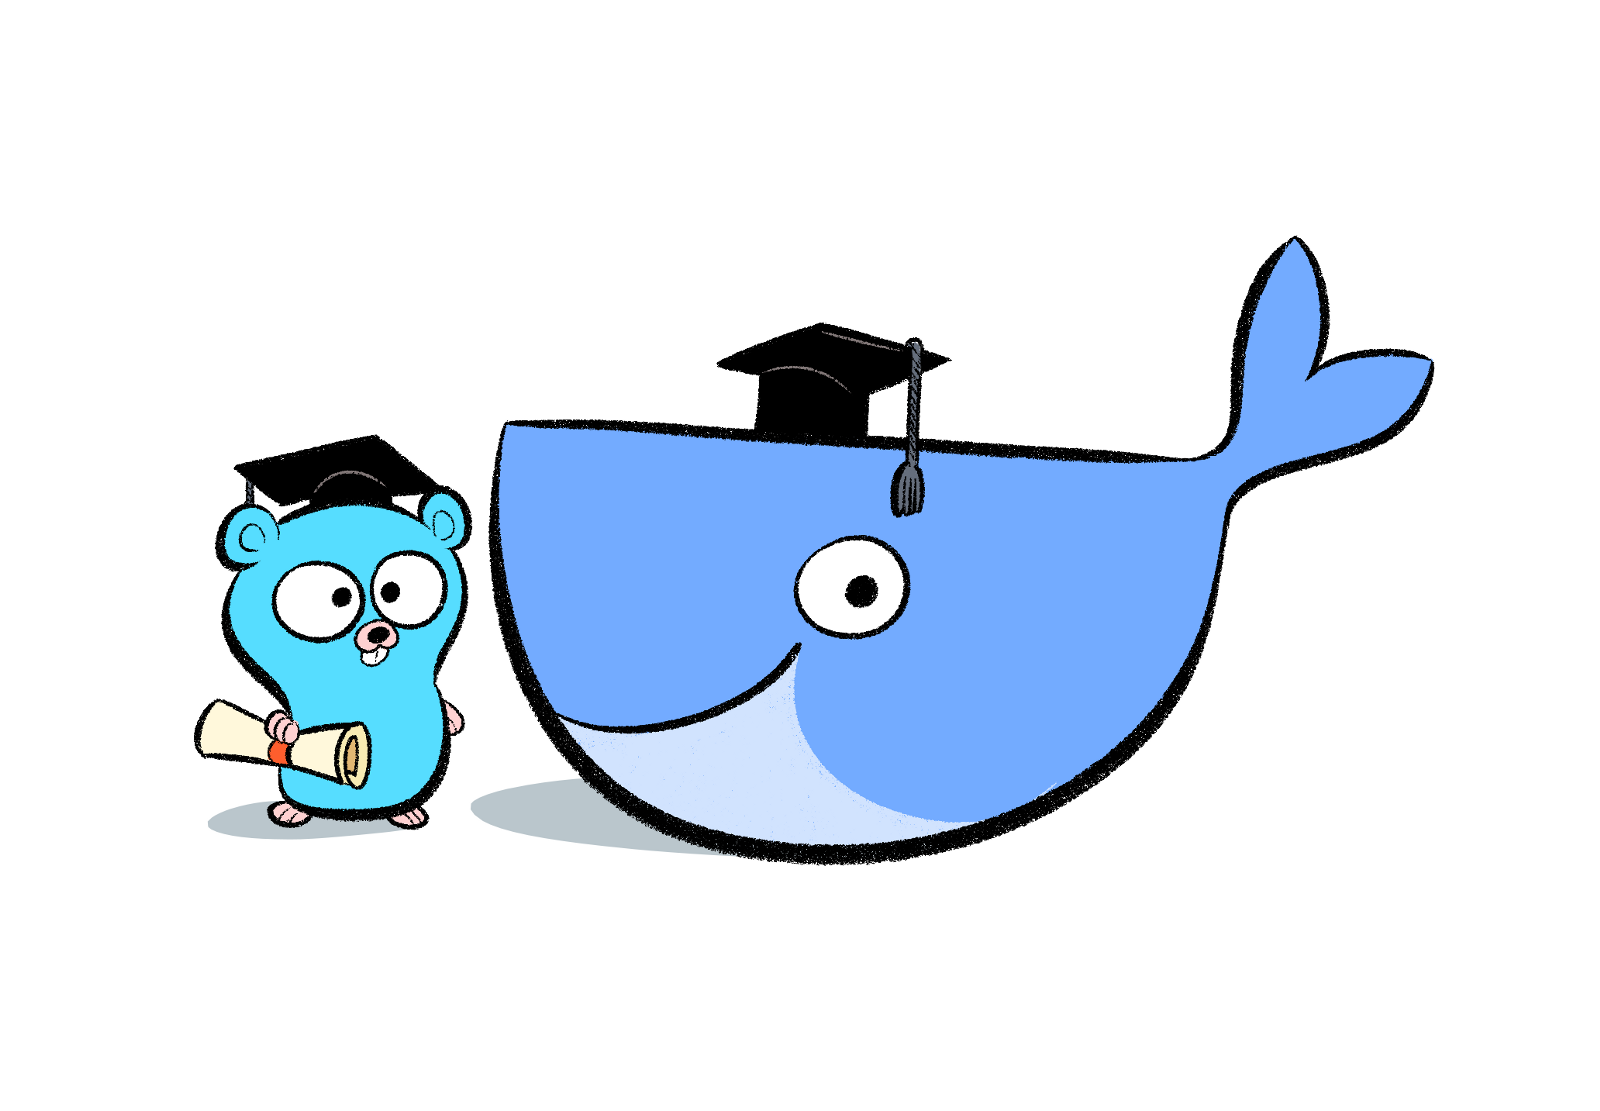 Cute Docker Whale with a Gopher